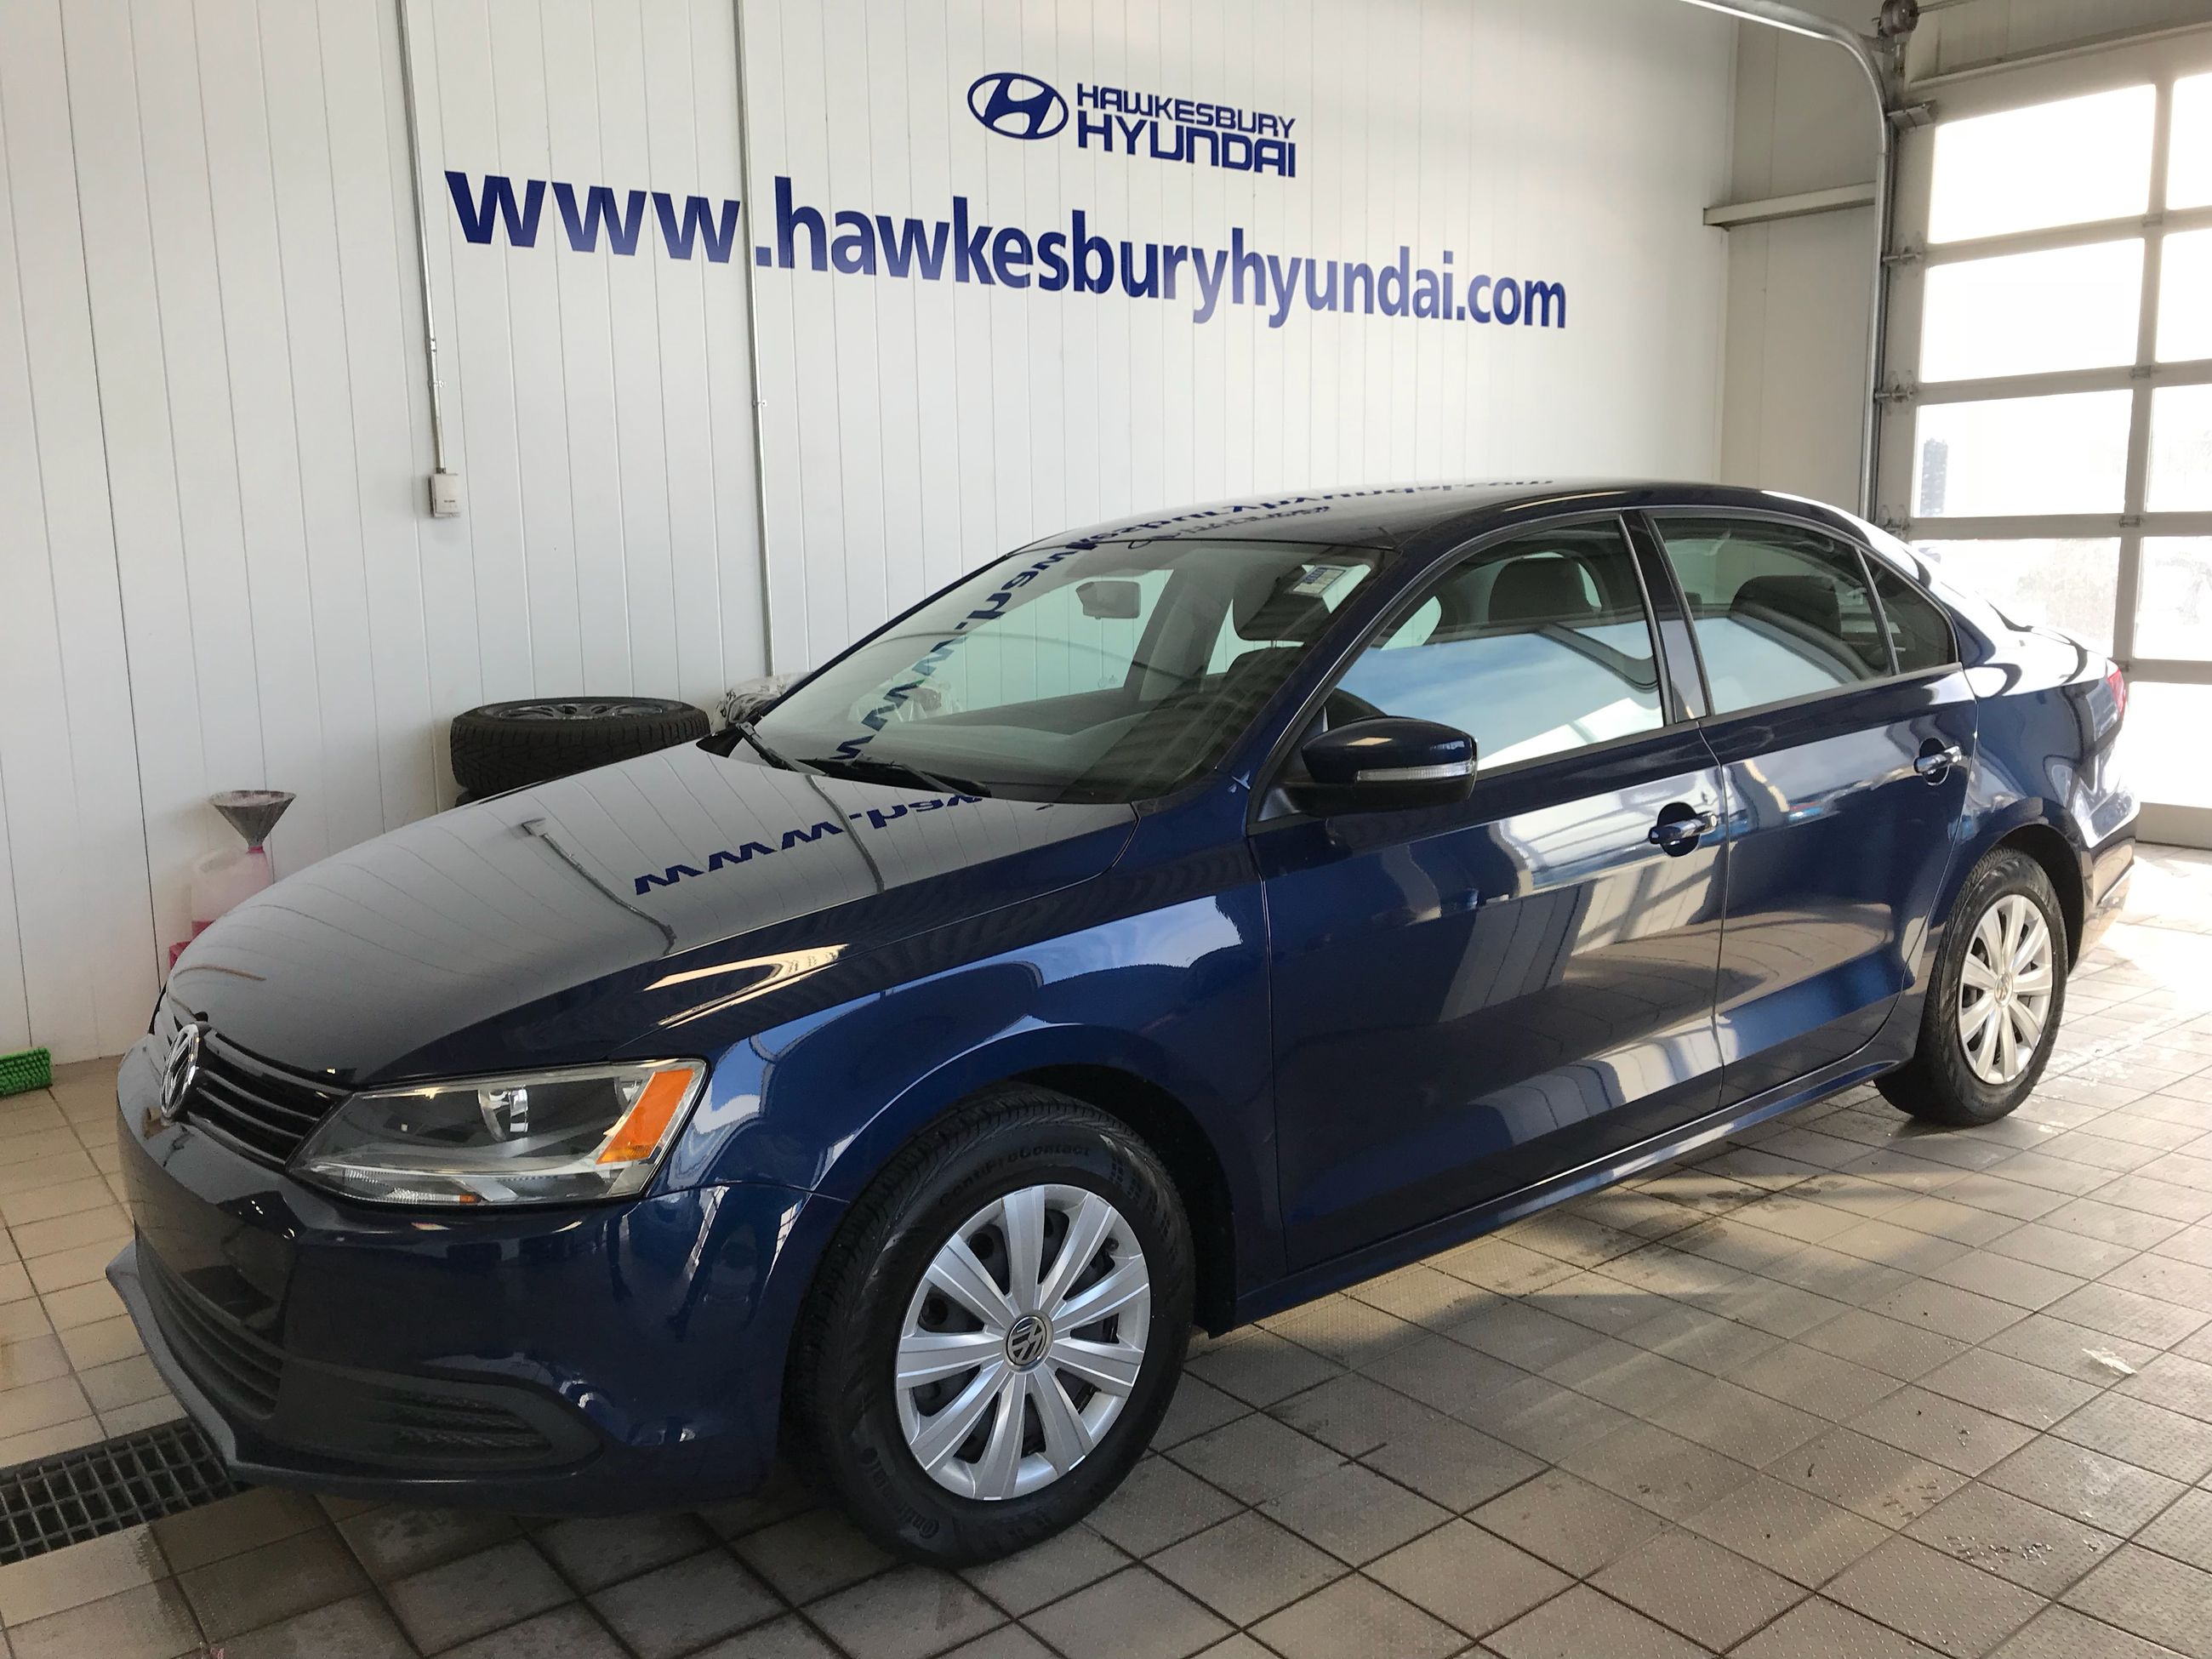 jetta hybrid large volkswagen for market image launched us tan paul version usa